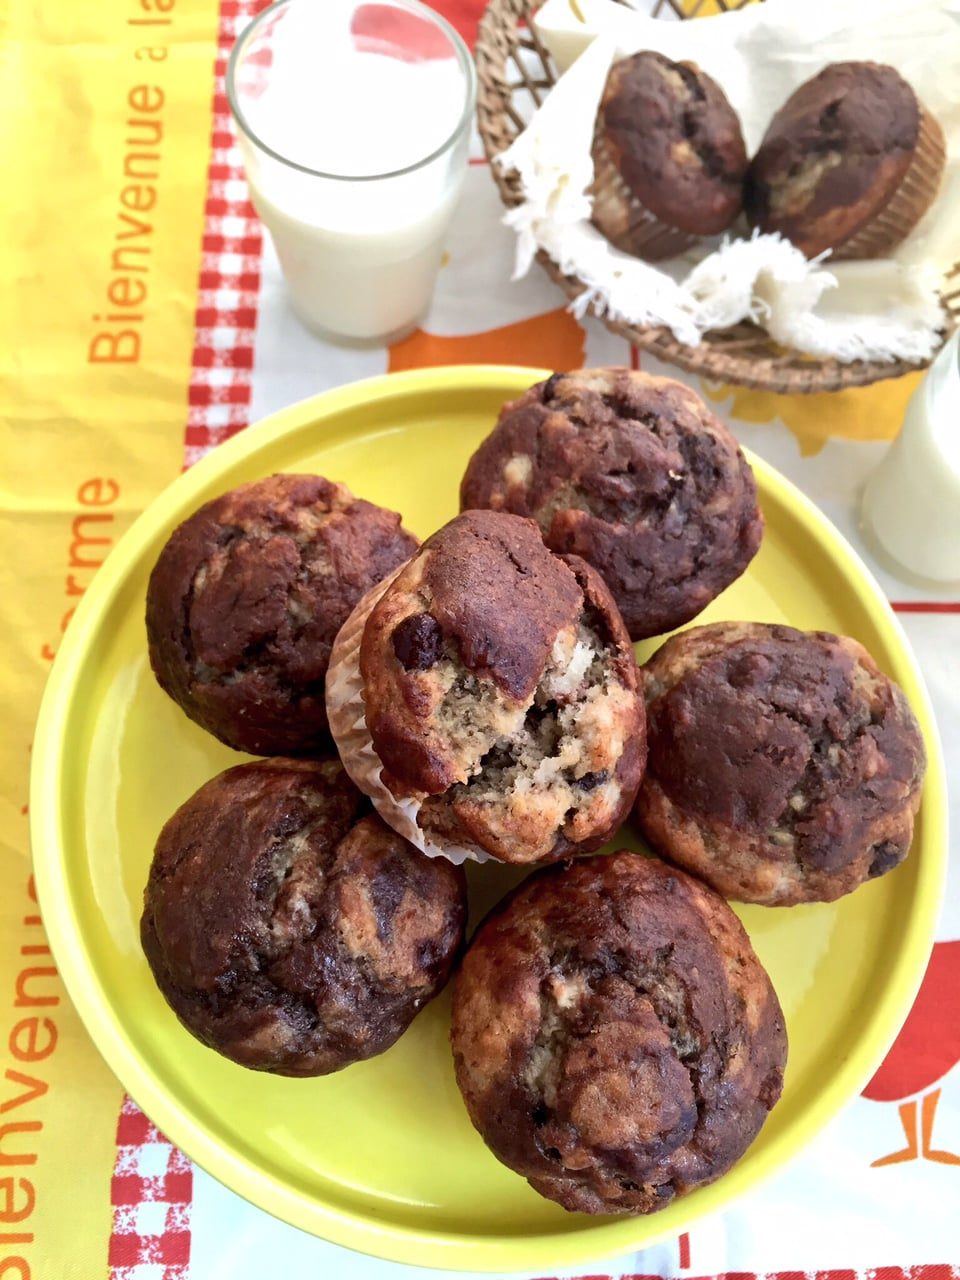 Banana Muffins with Choco Swirls